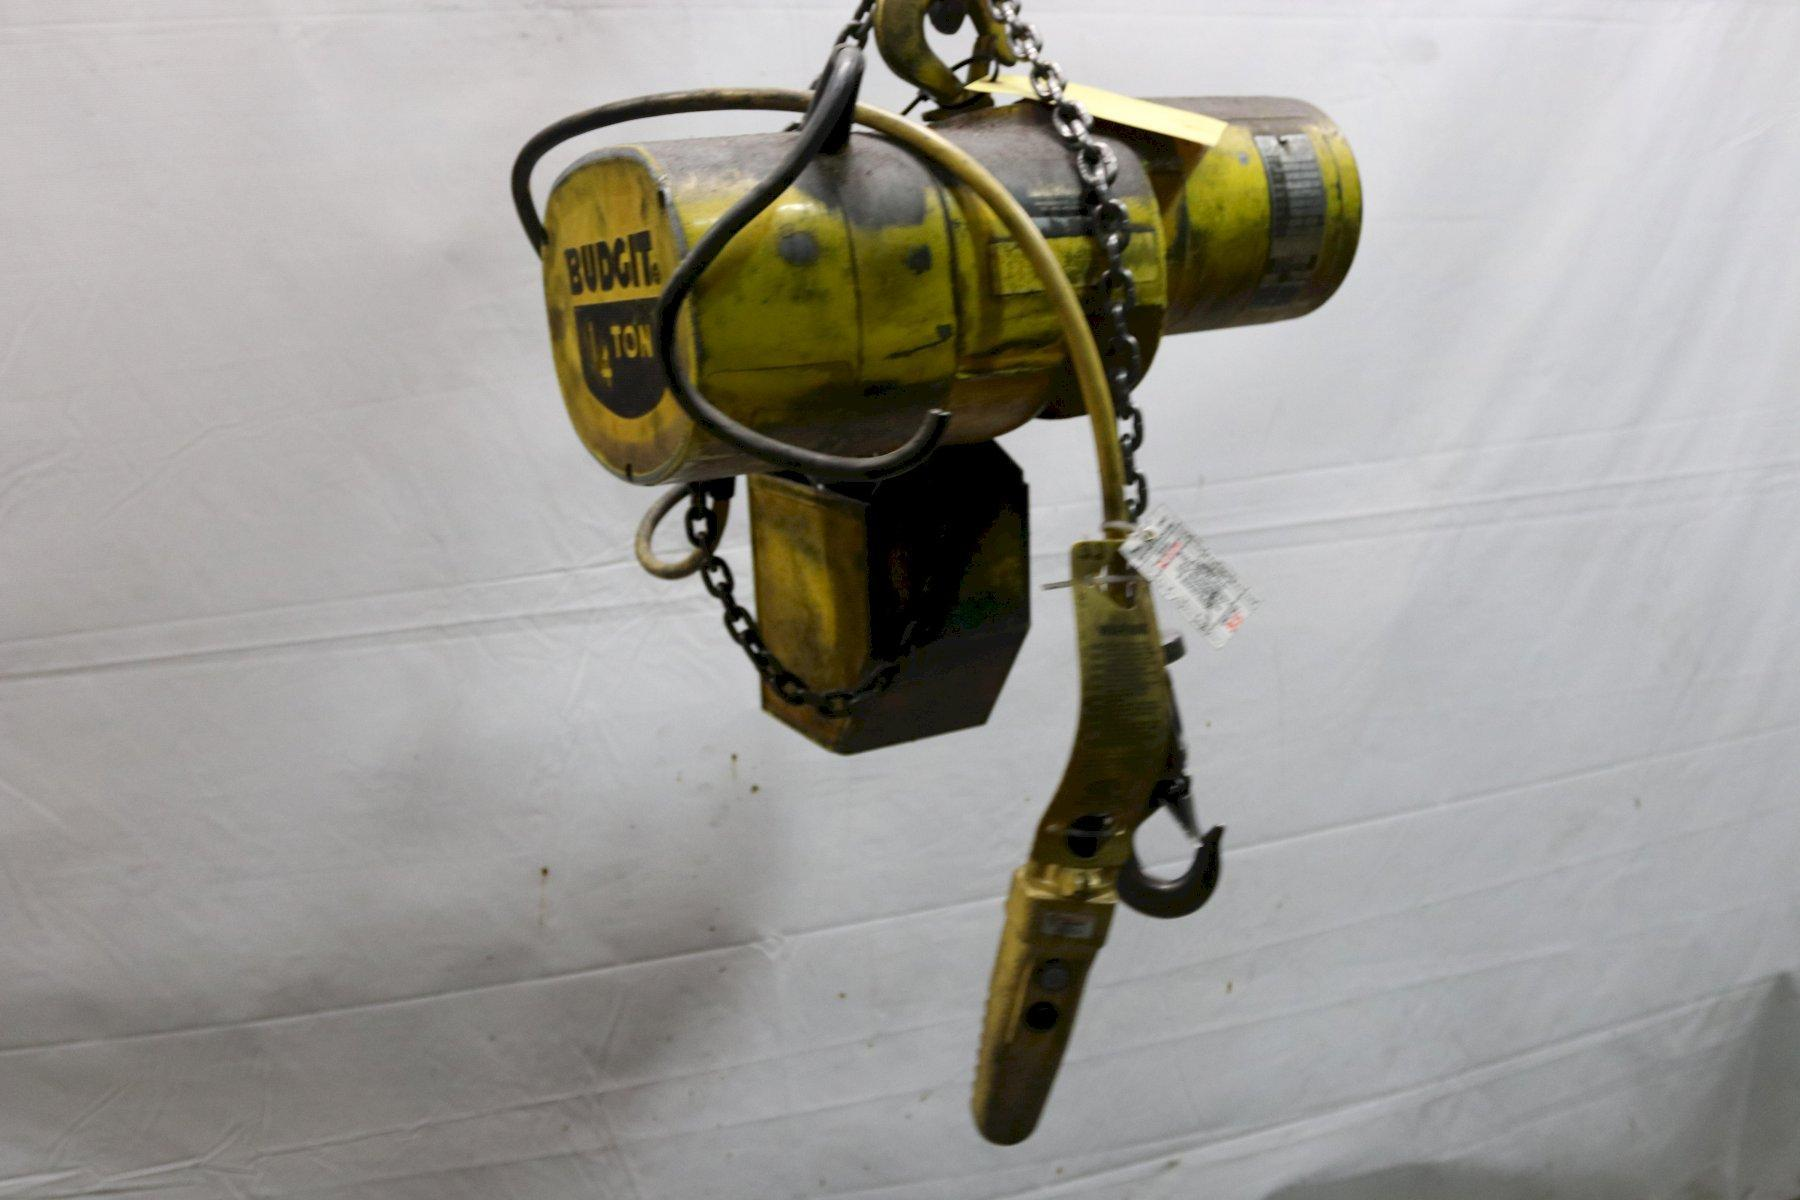 1/4 TON BUDGIT ELECTRIC POWERED CHAIN HOIST: STOCK #11988